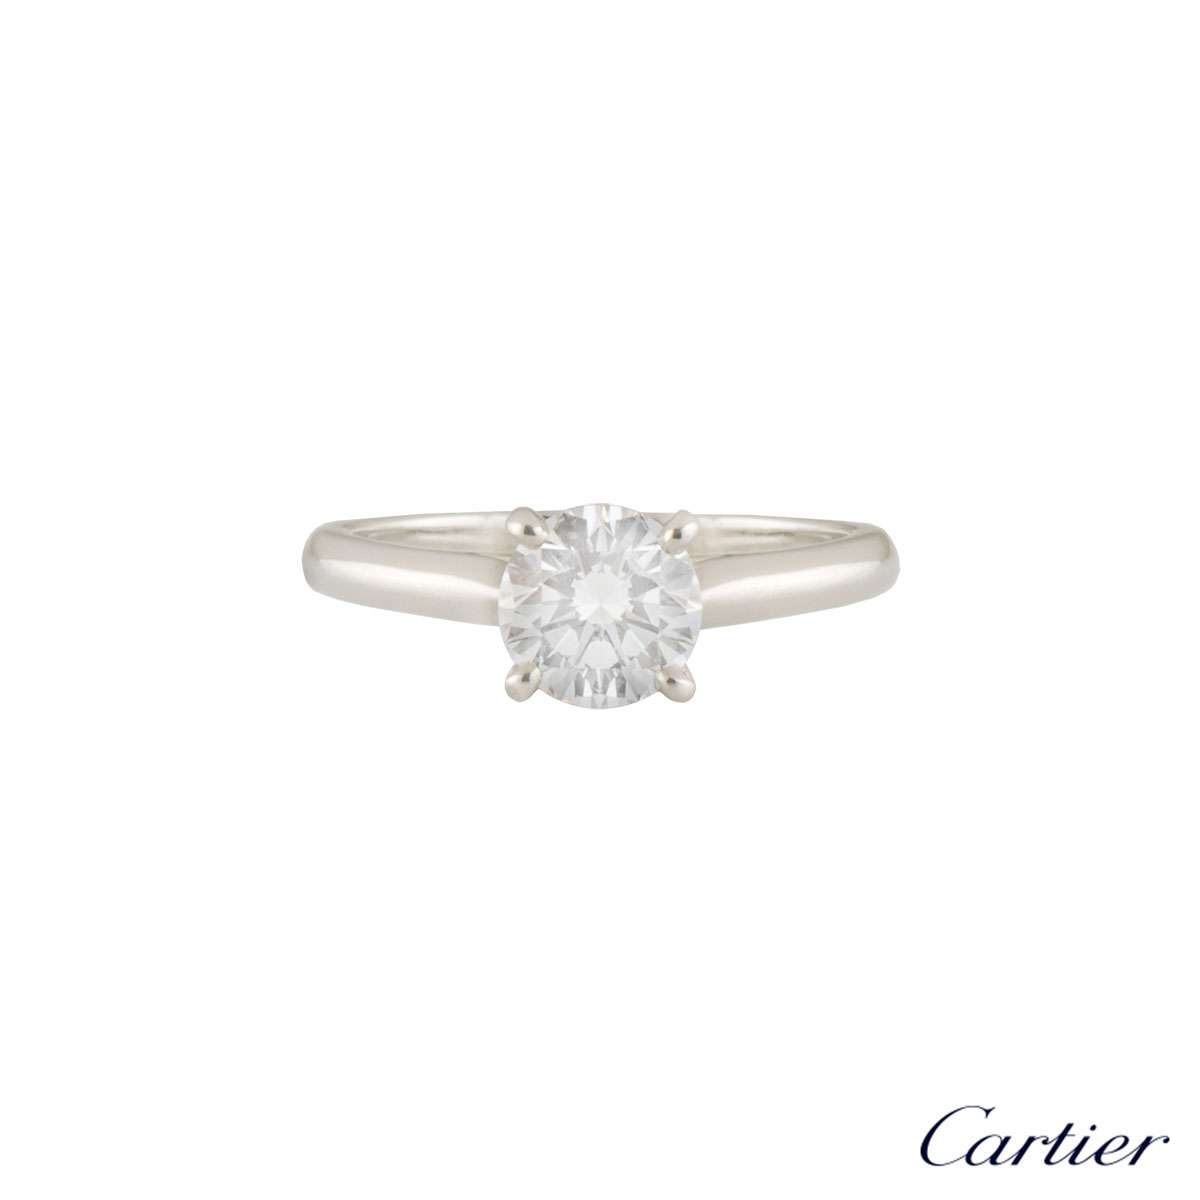 Cartier Platinum 1895 Diamond Ring 0.85ct E/VS1